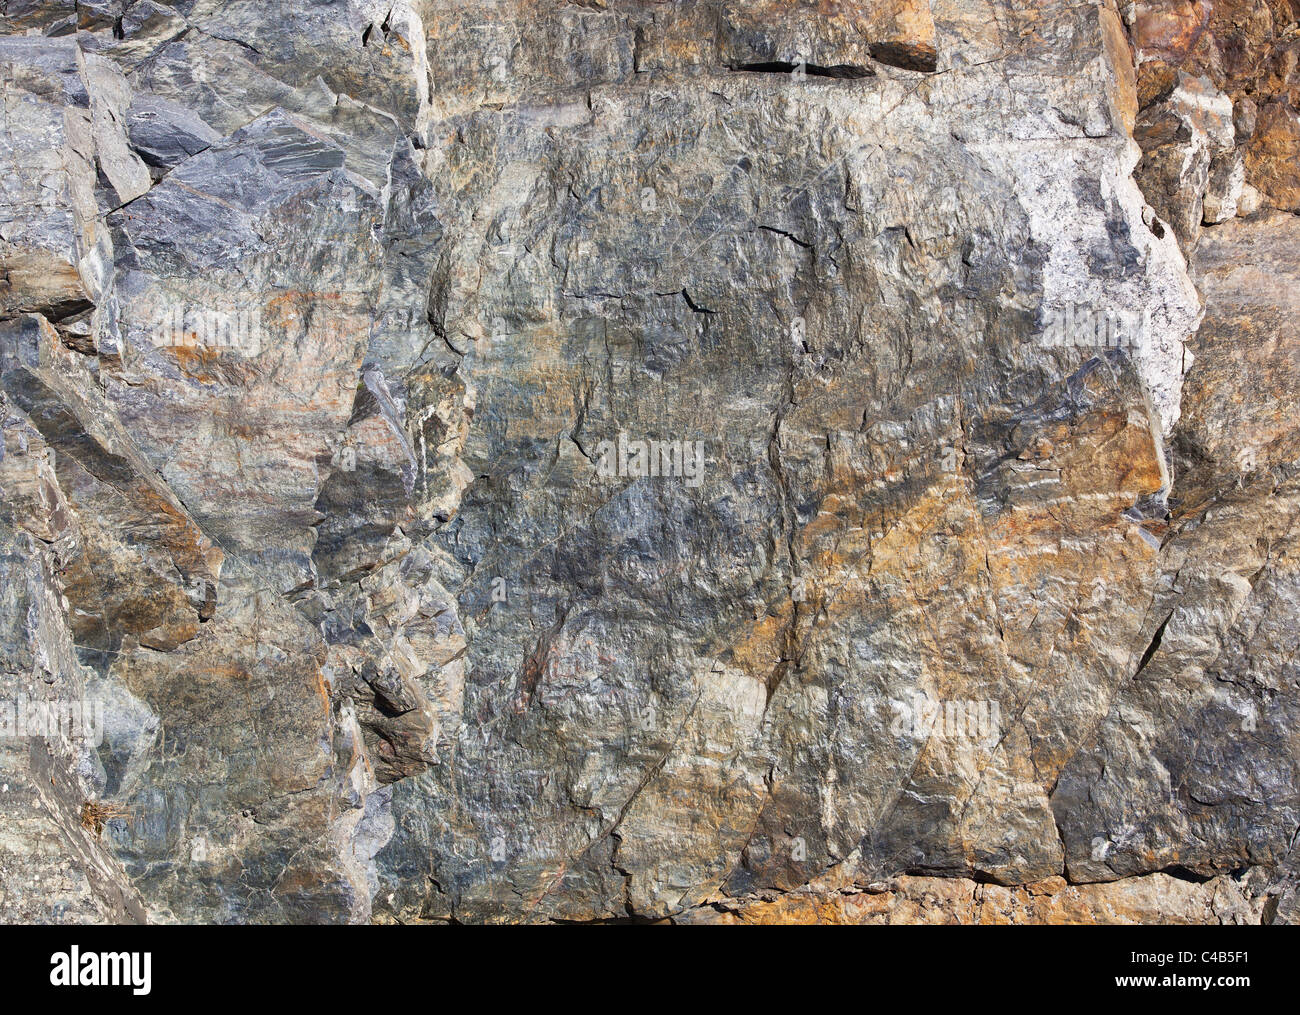 Natural stone texture or background. - Stock Image